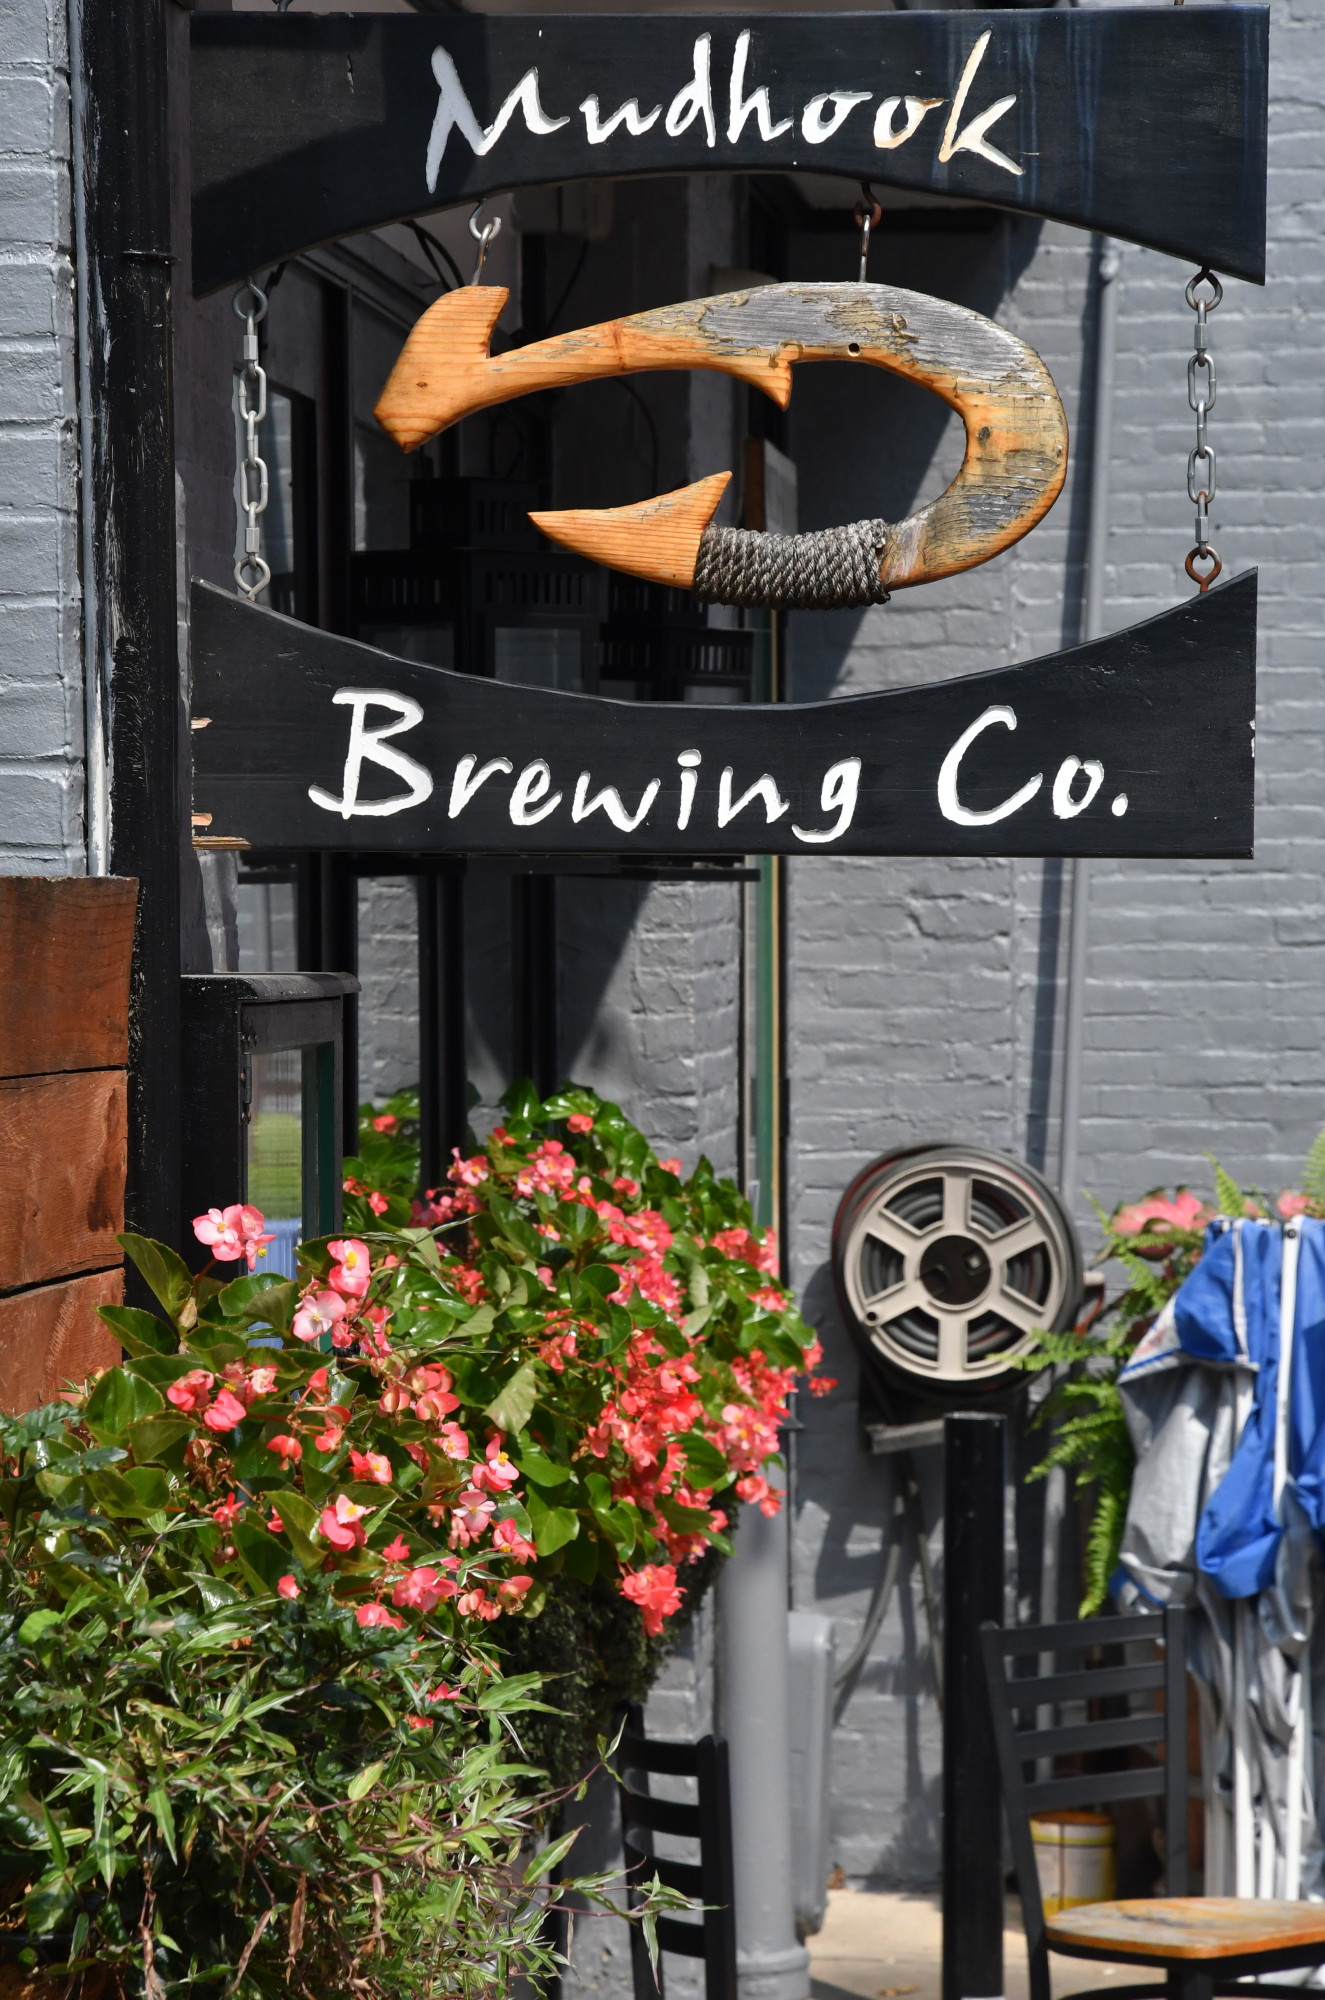 2020-SYCBA-Aug.-Mtg.-Mudhook-Brew-001